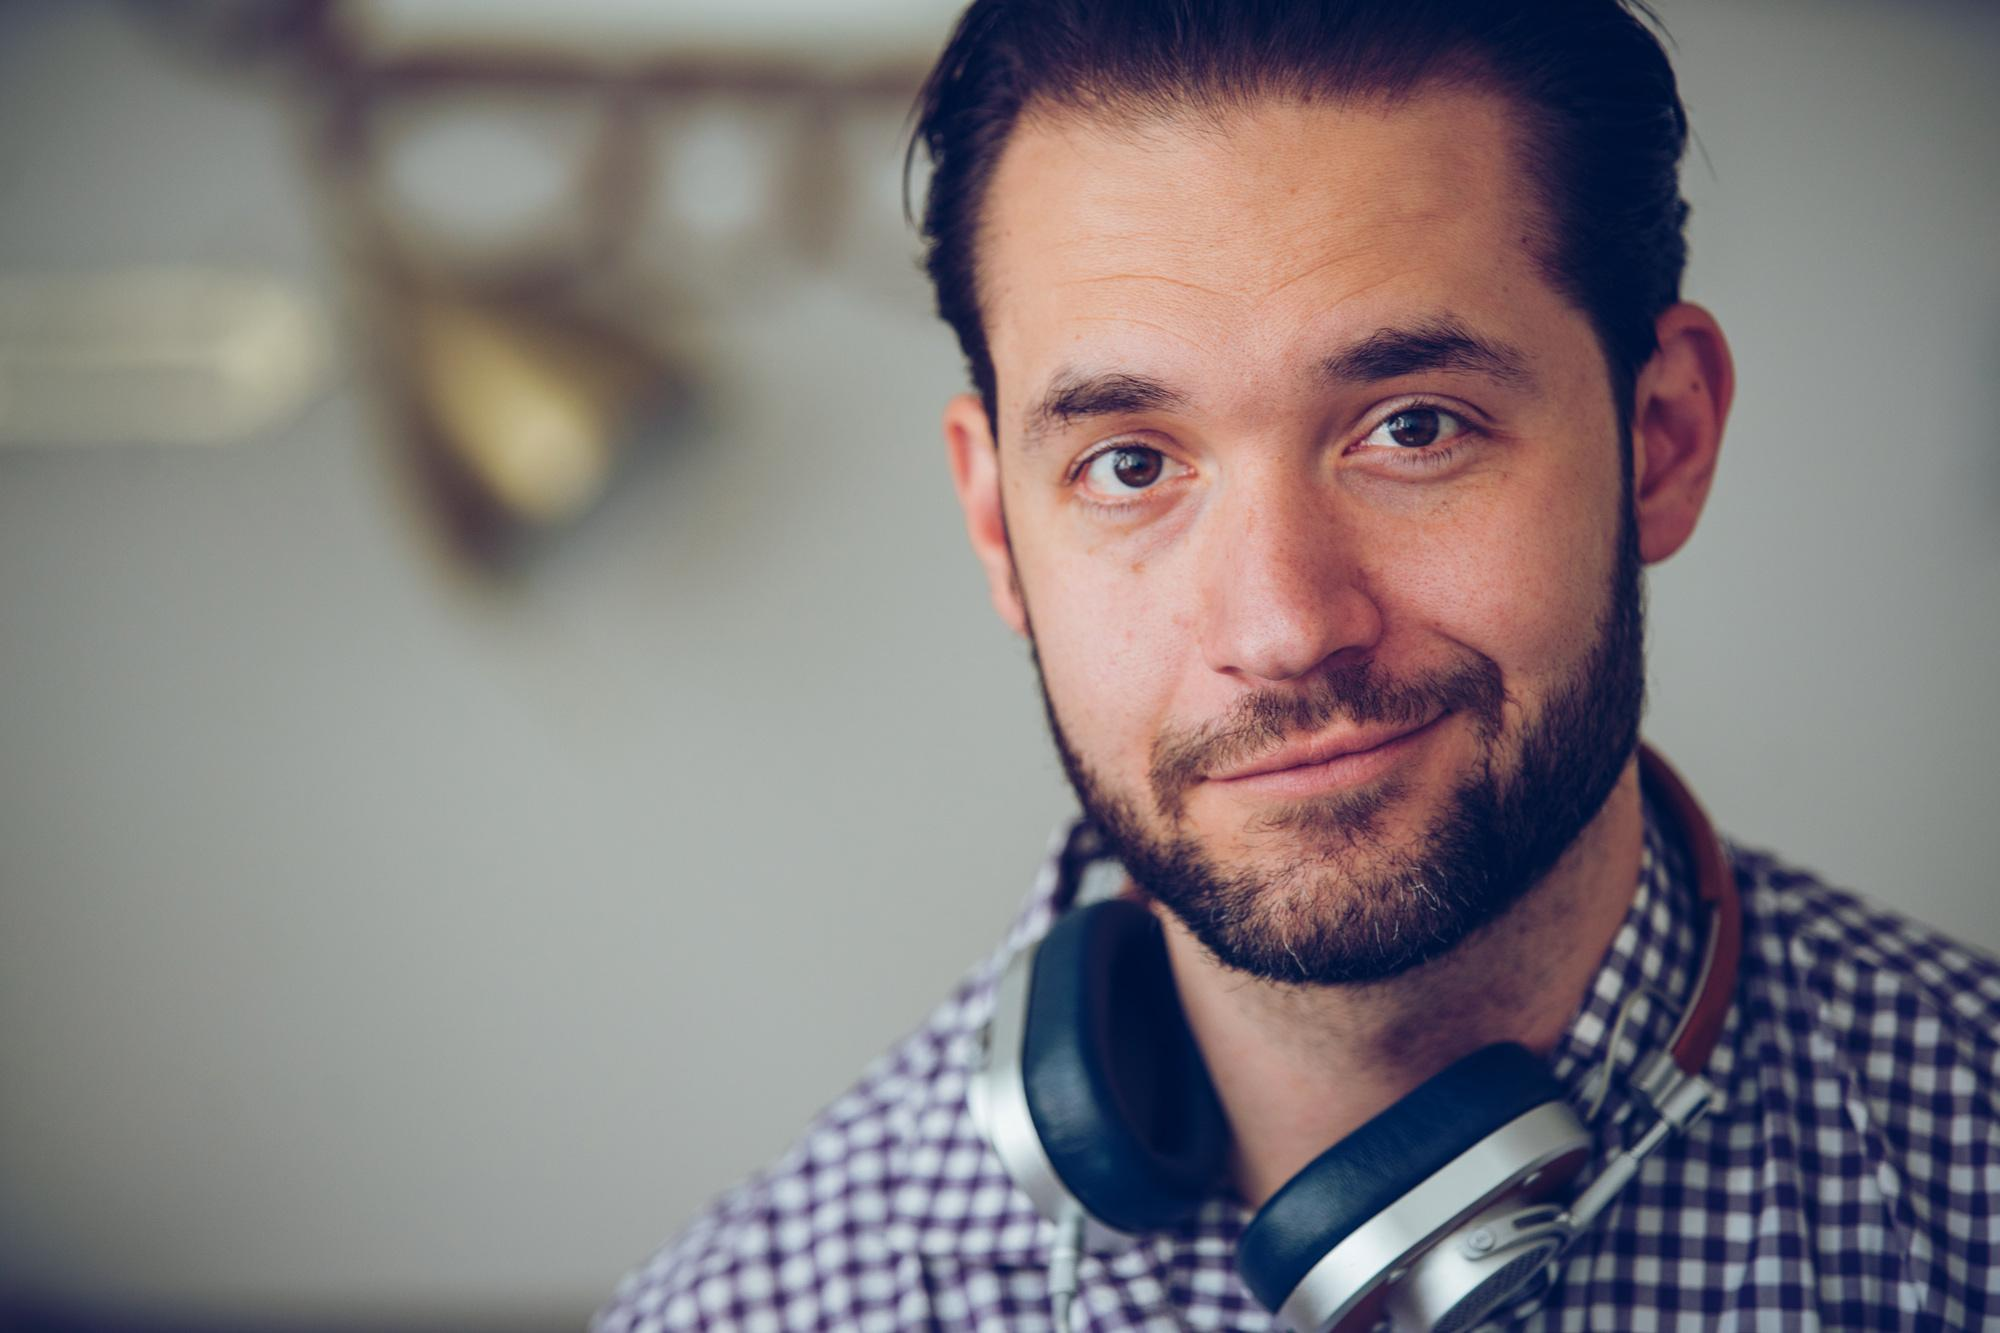 Ohanian is a 2005 graduate of the University and the co-founder of the successful website Reddit.